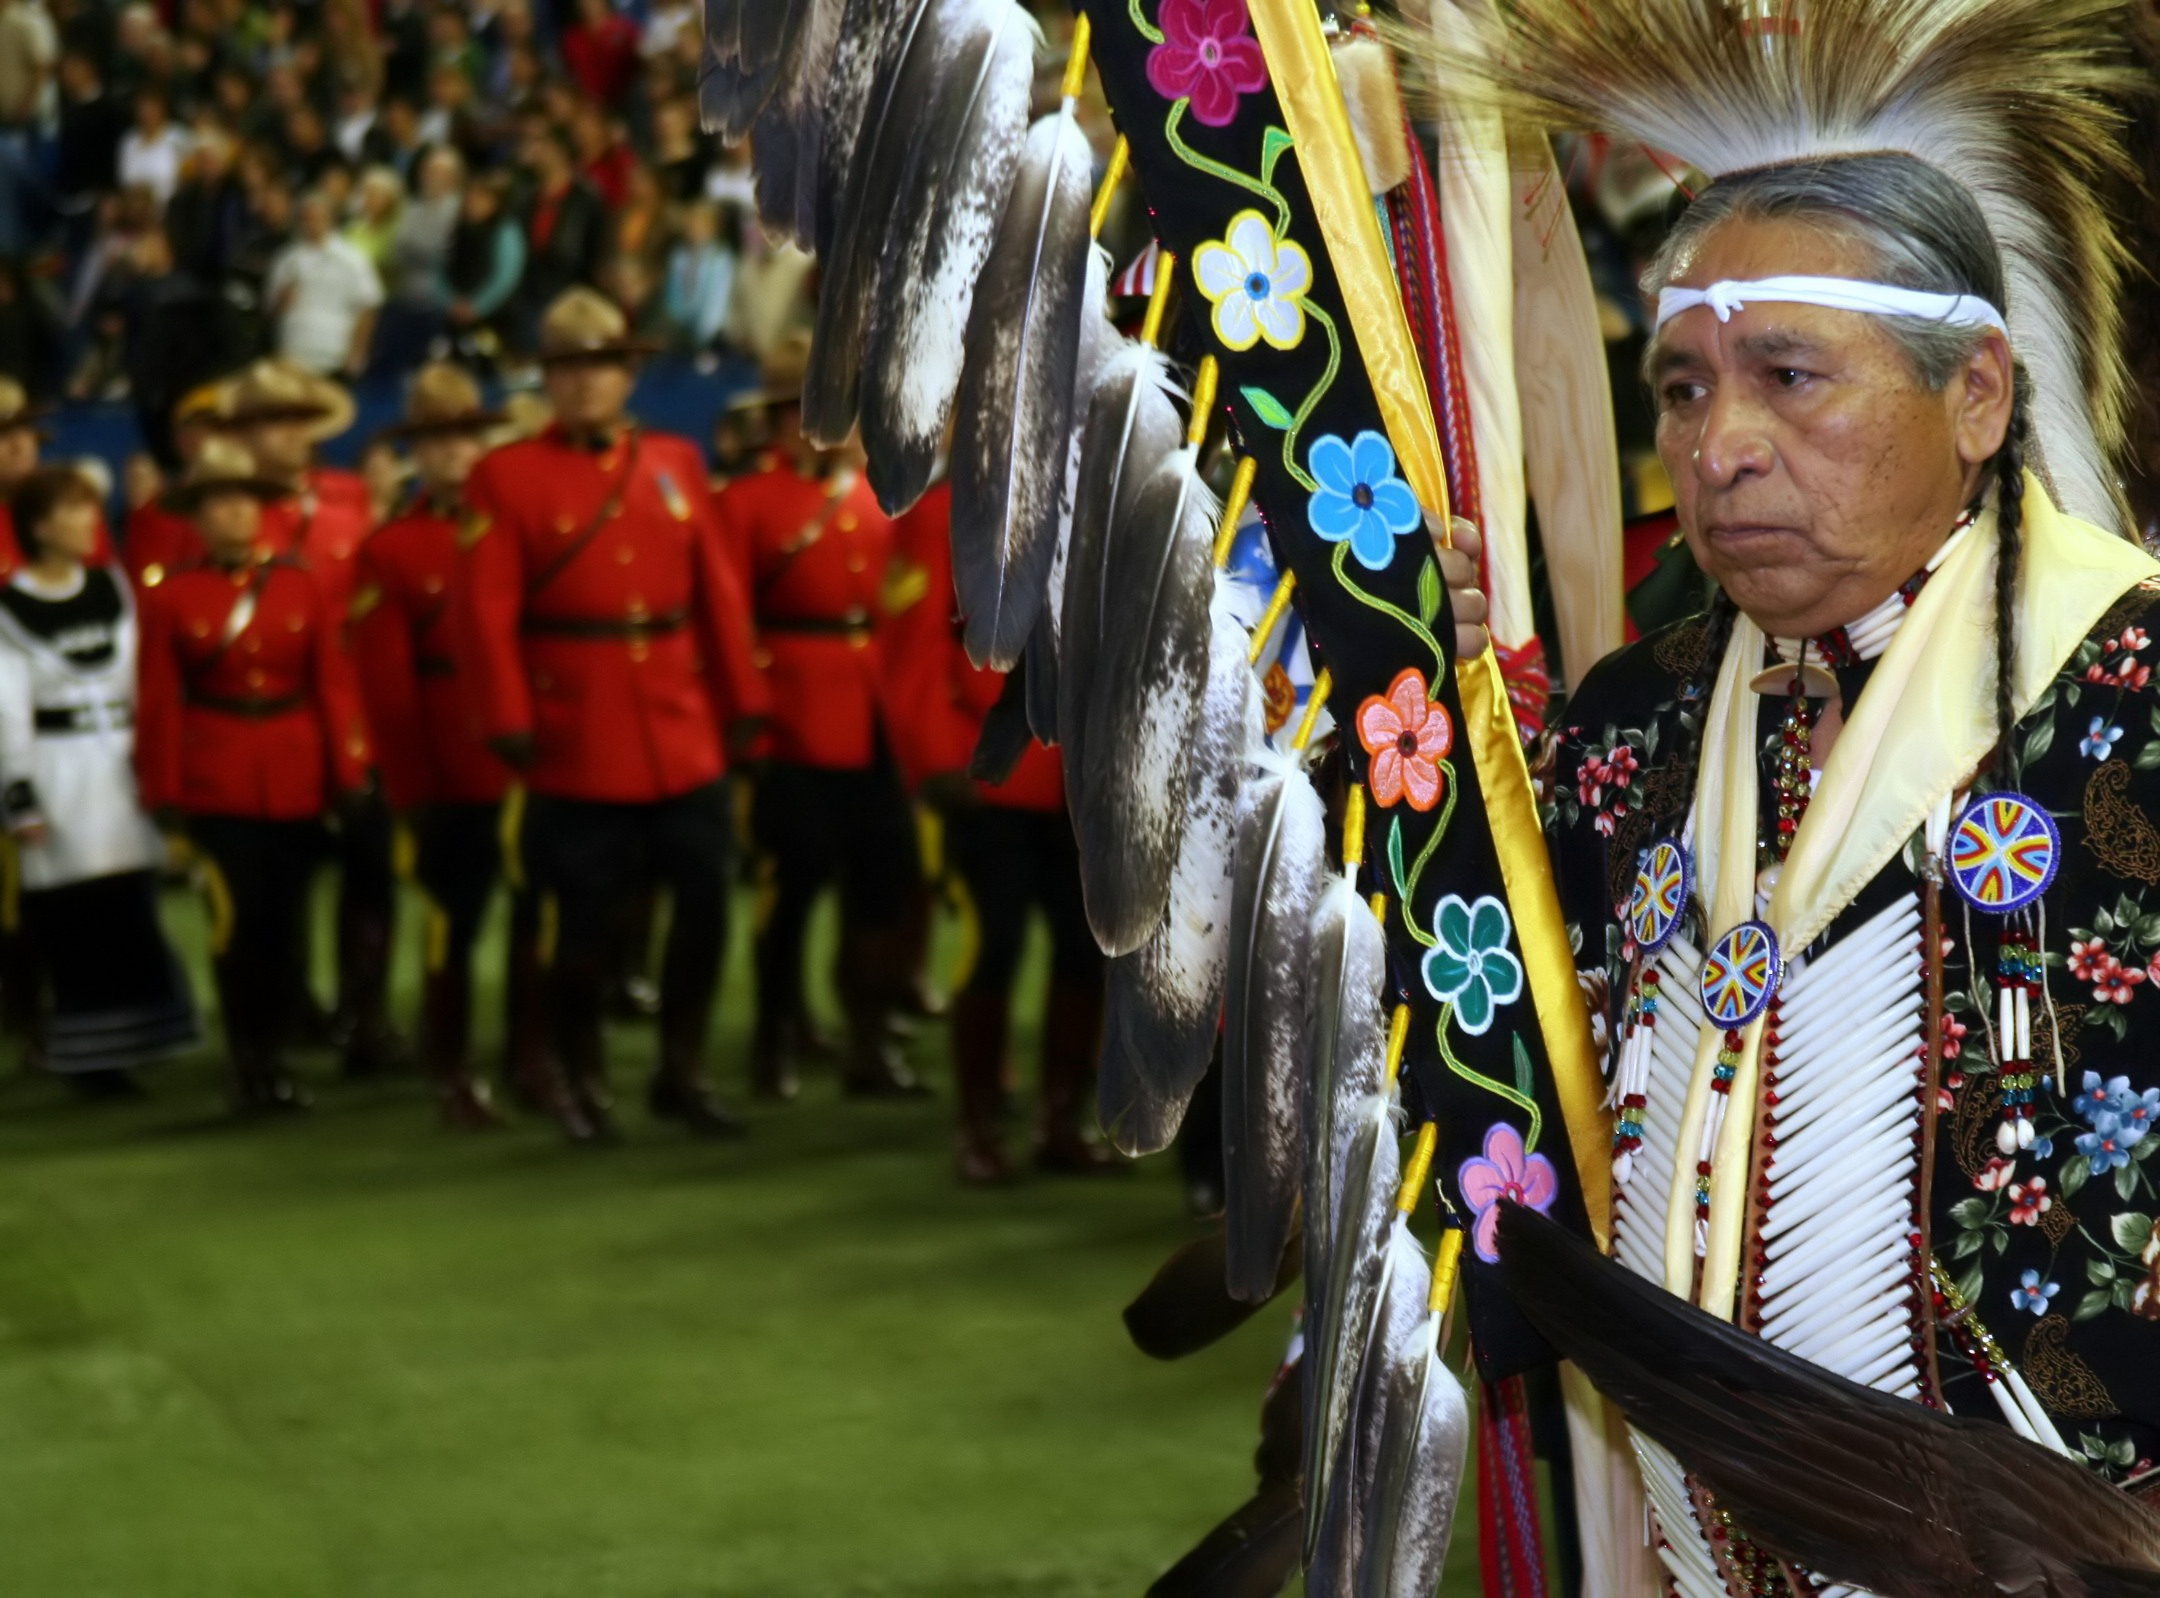 Mohawk band forms indigenous legal system independent of Canada